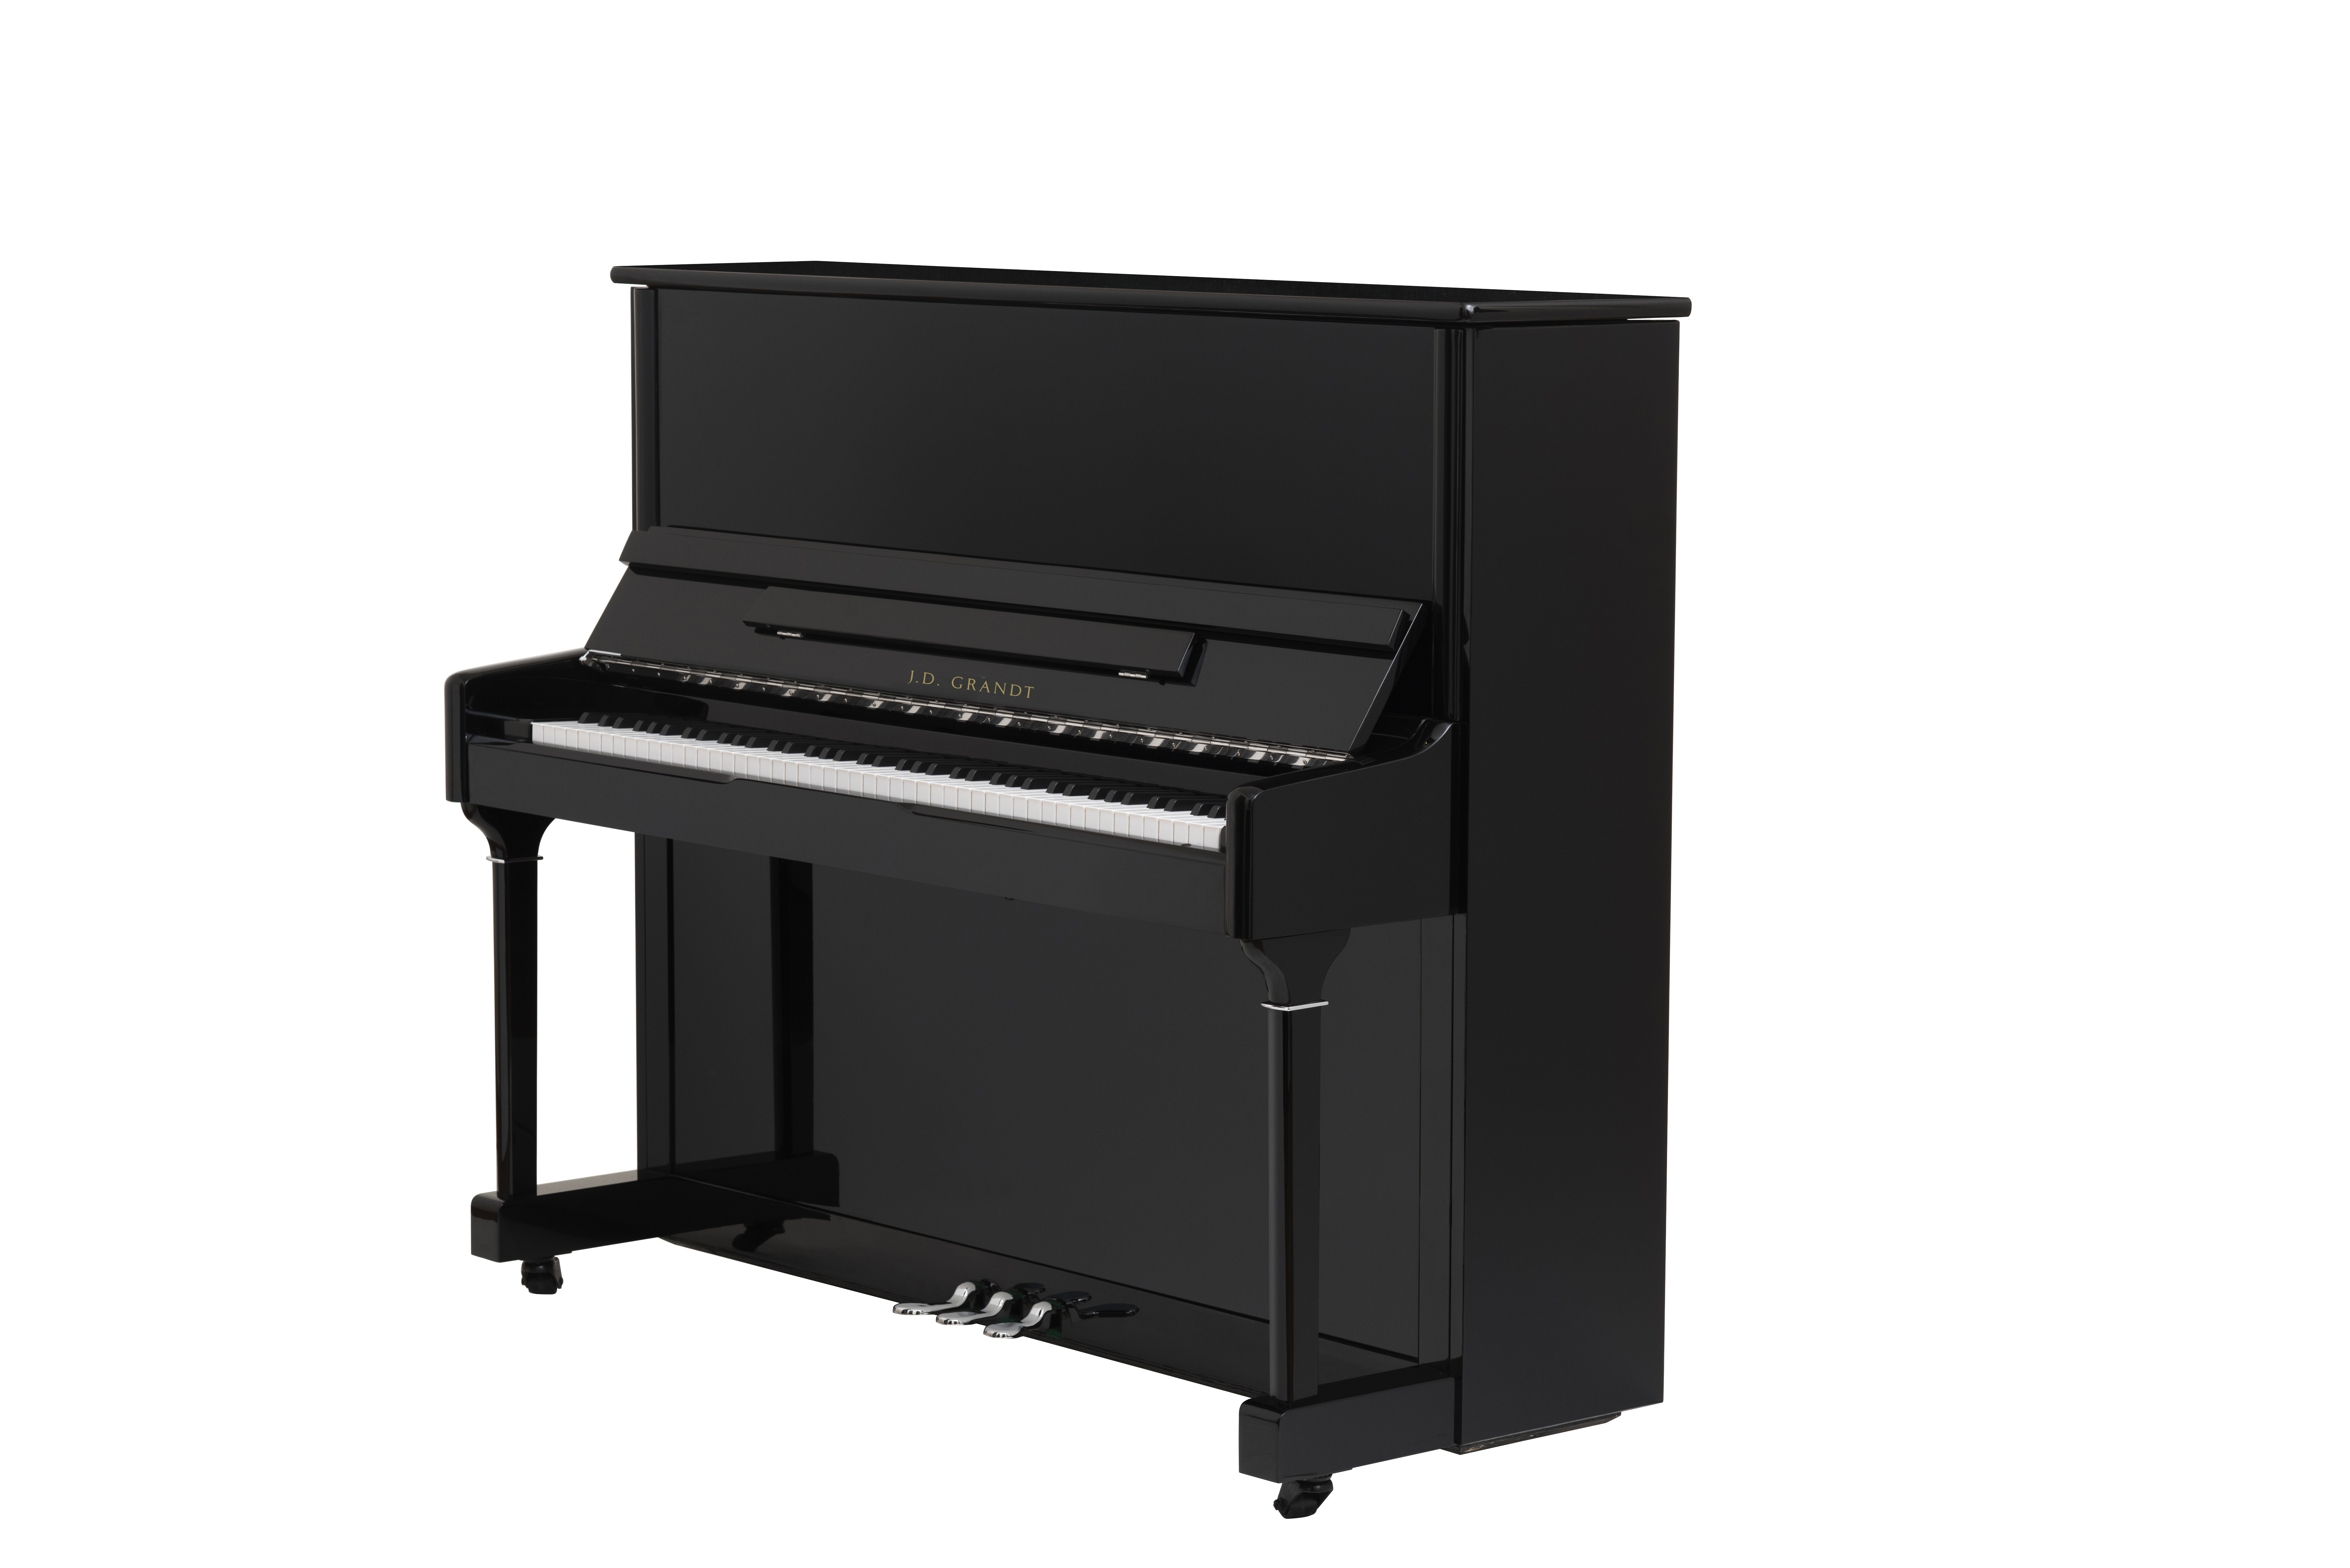 J.D. Grandt UP-115 Black Upright Piano